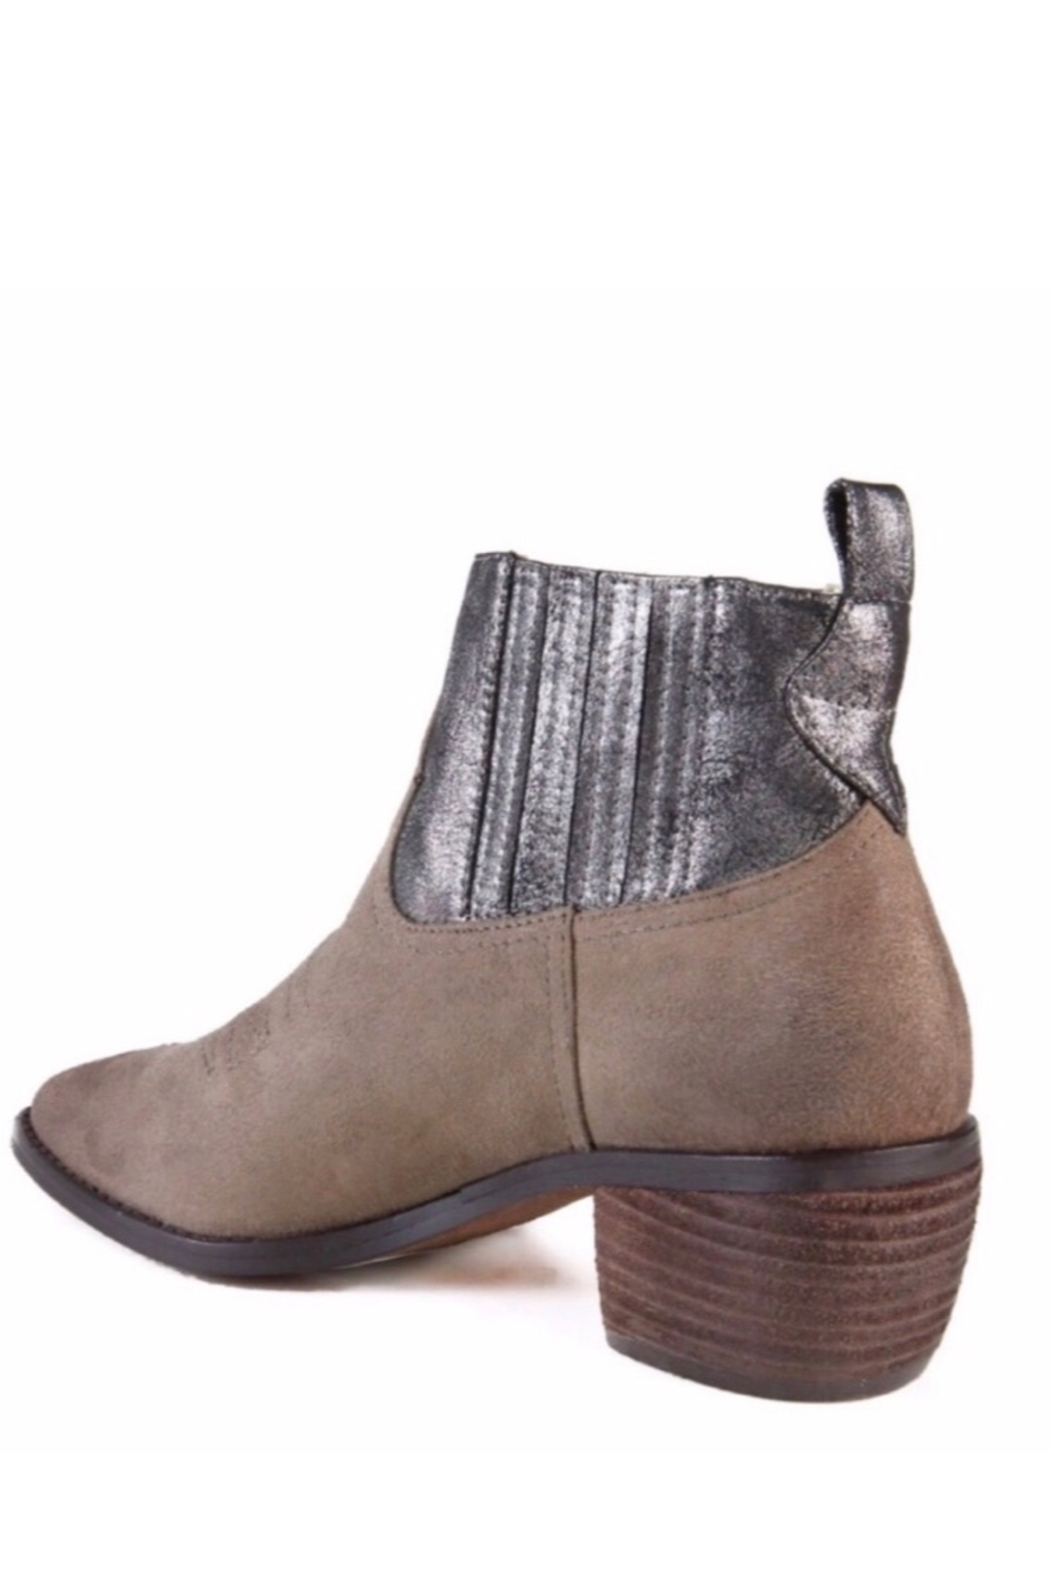 Band Of Gypsies Borderline Mirco Cow Suede Taupe Booties - Side Cropped Image